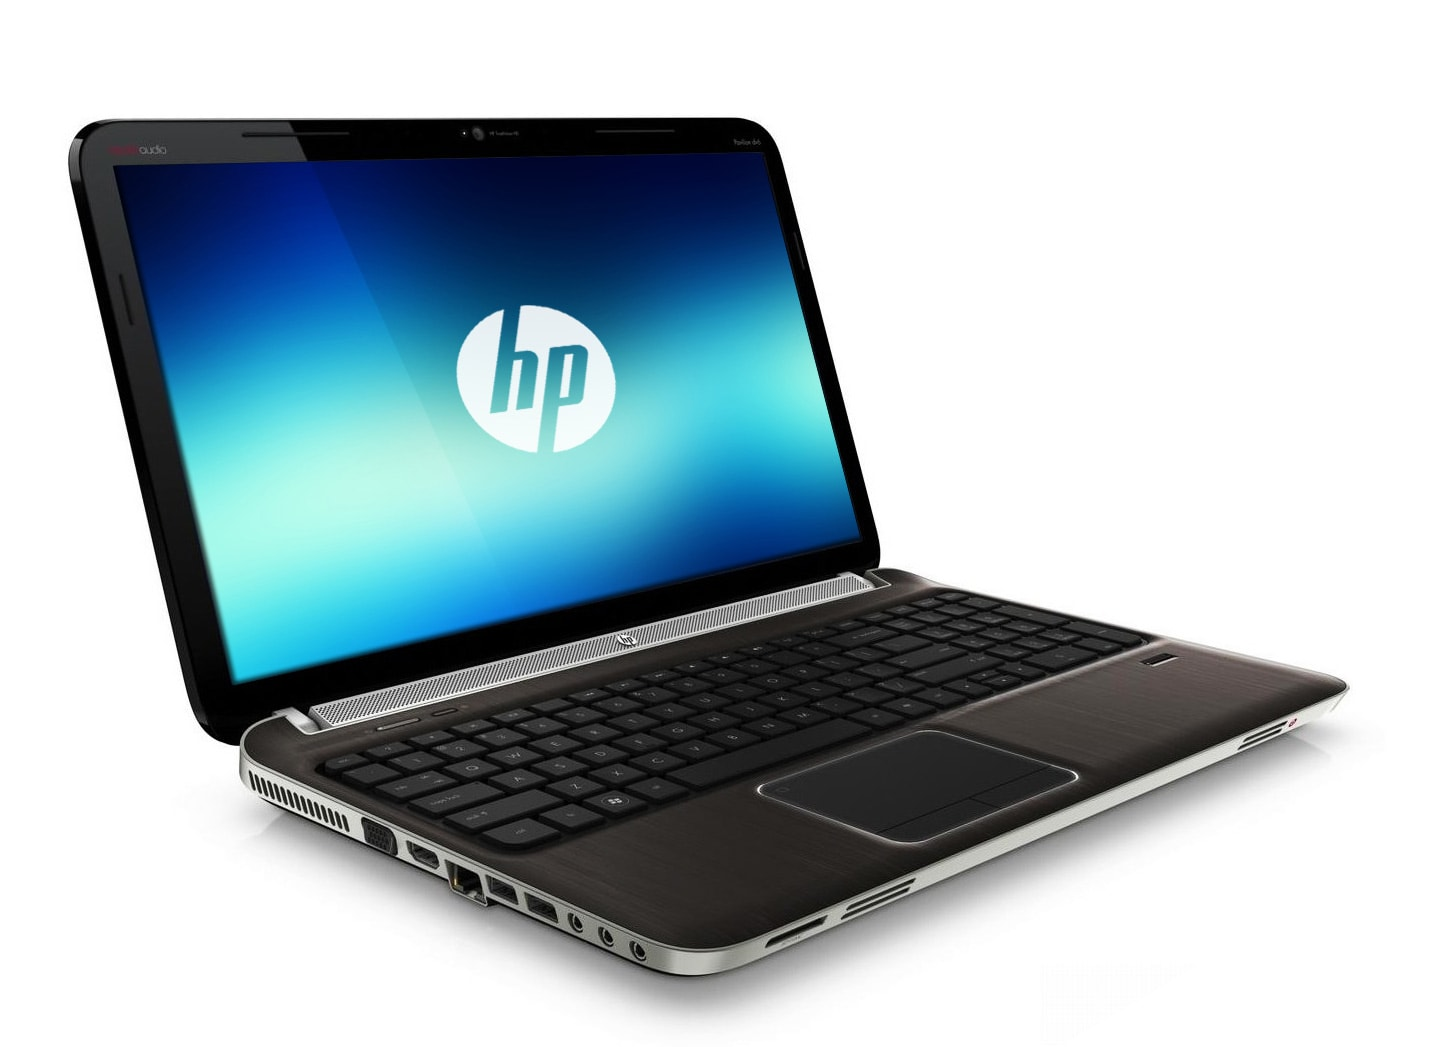 Hp notebook quickdock price - 2017 4 Hp Pavilion Dv6 Core I5 Drivers Free Download